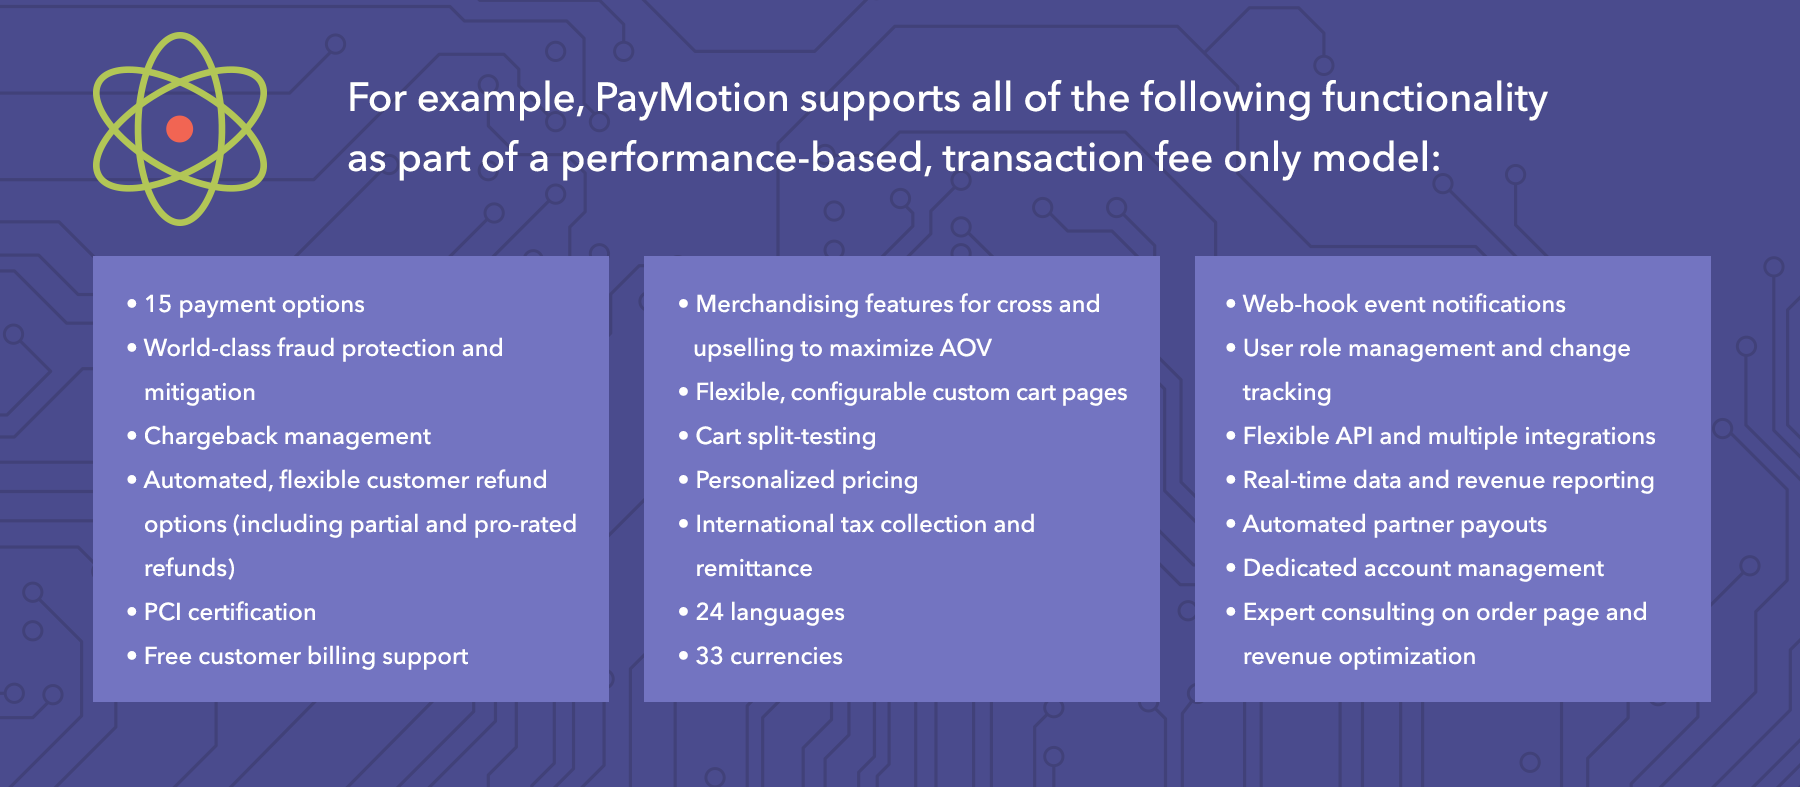 PayMotion supports a wide range of ecommerce functionality included in a single per transaction percentage fee.